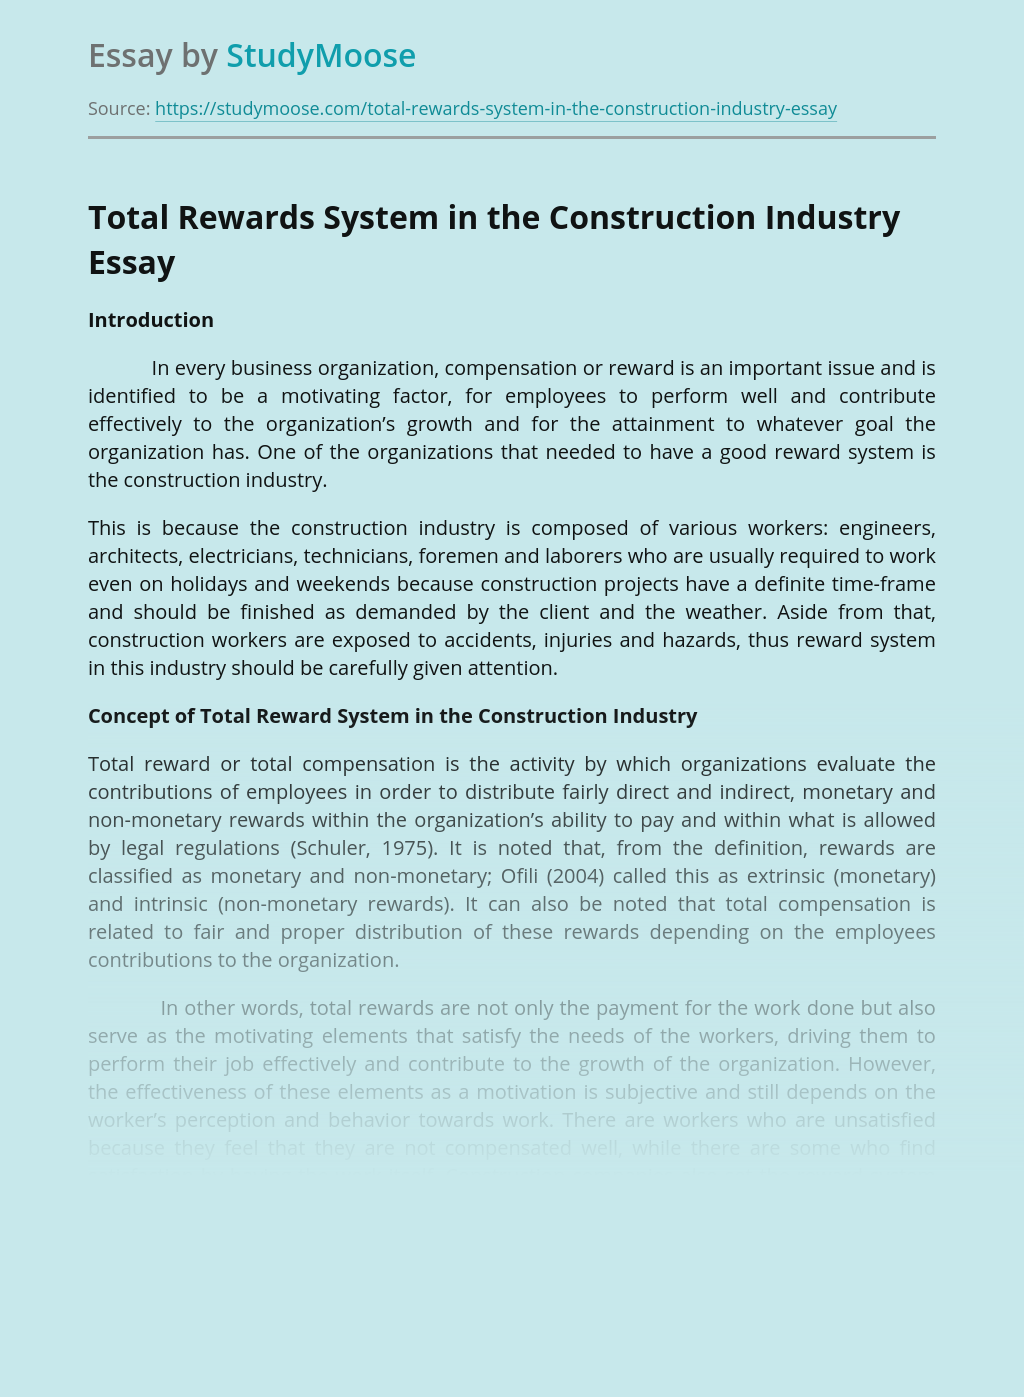 Total Rewards System in the Construction Industry